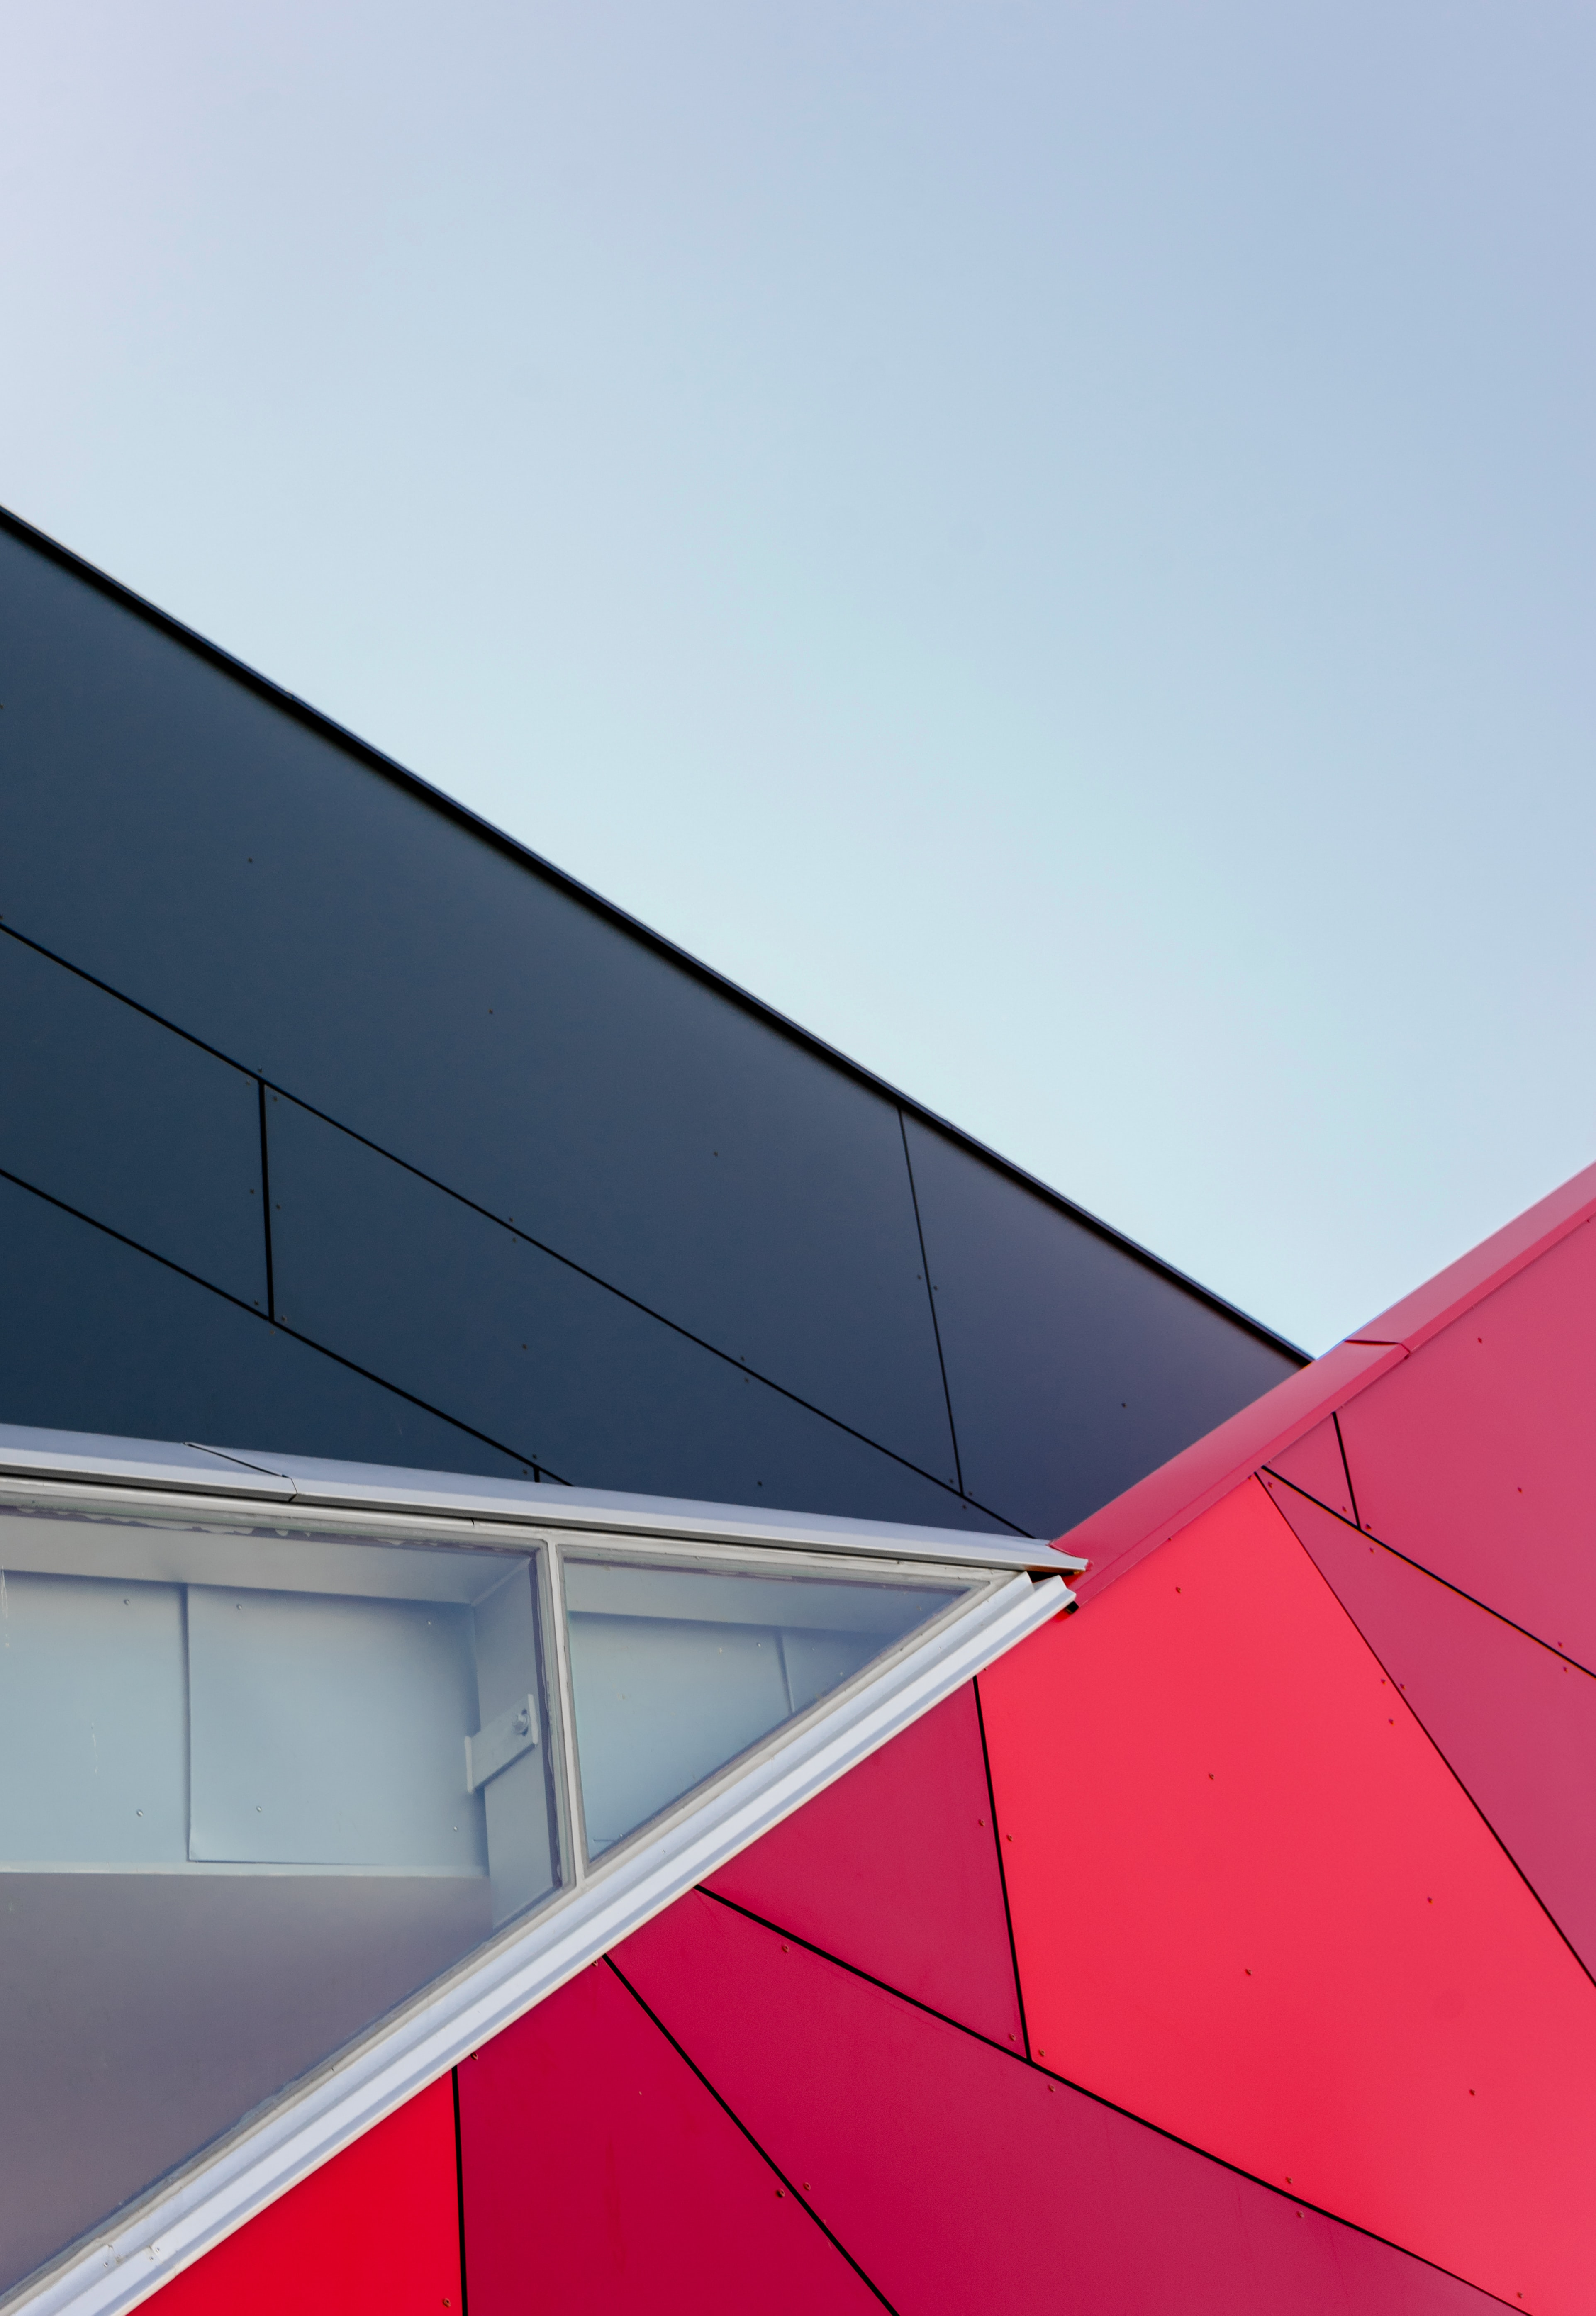 A black and red building with geometric angles and patterns